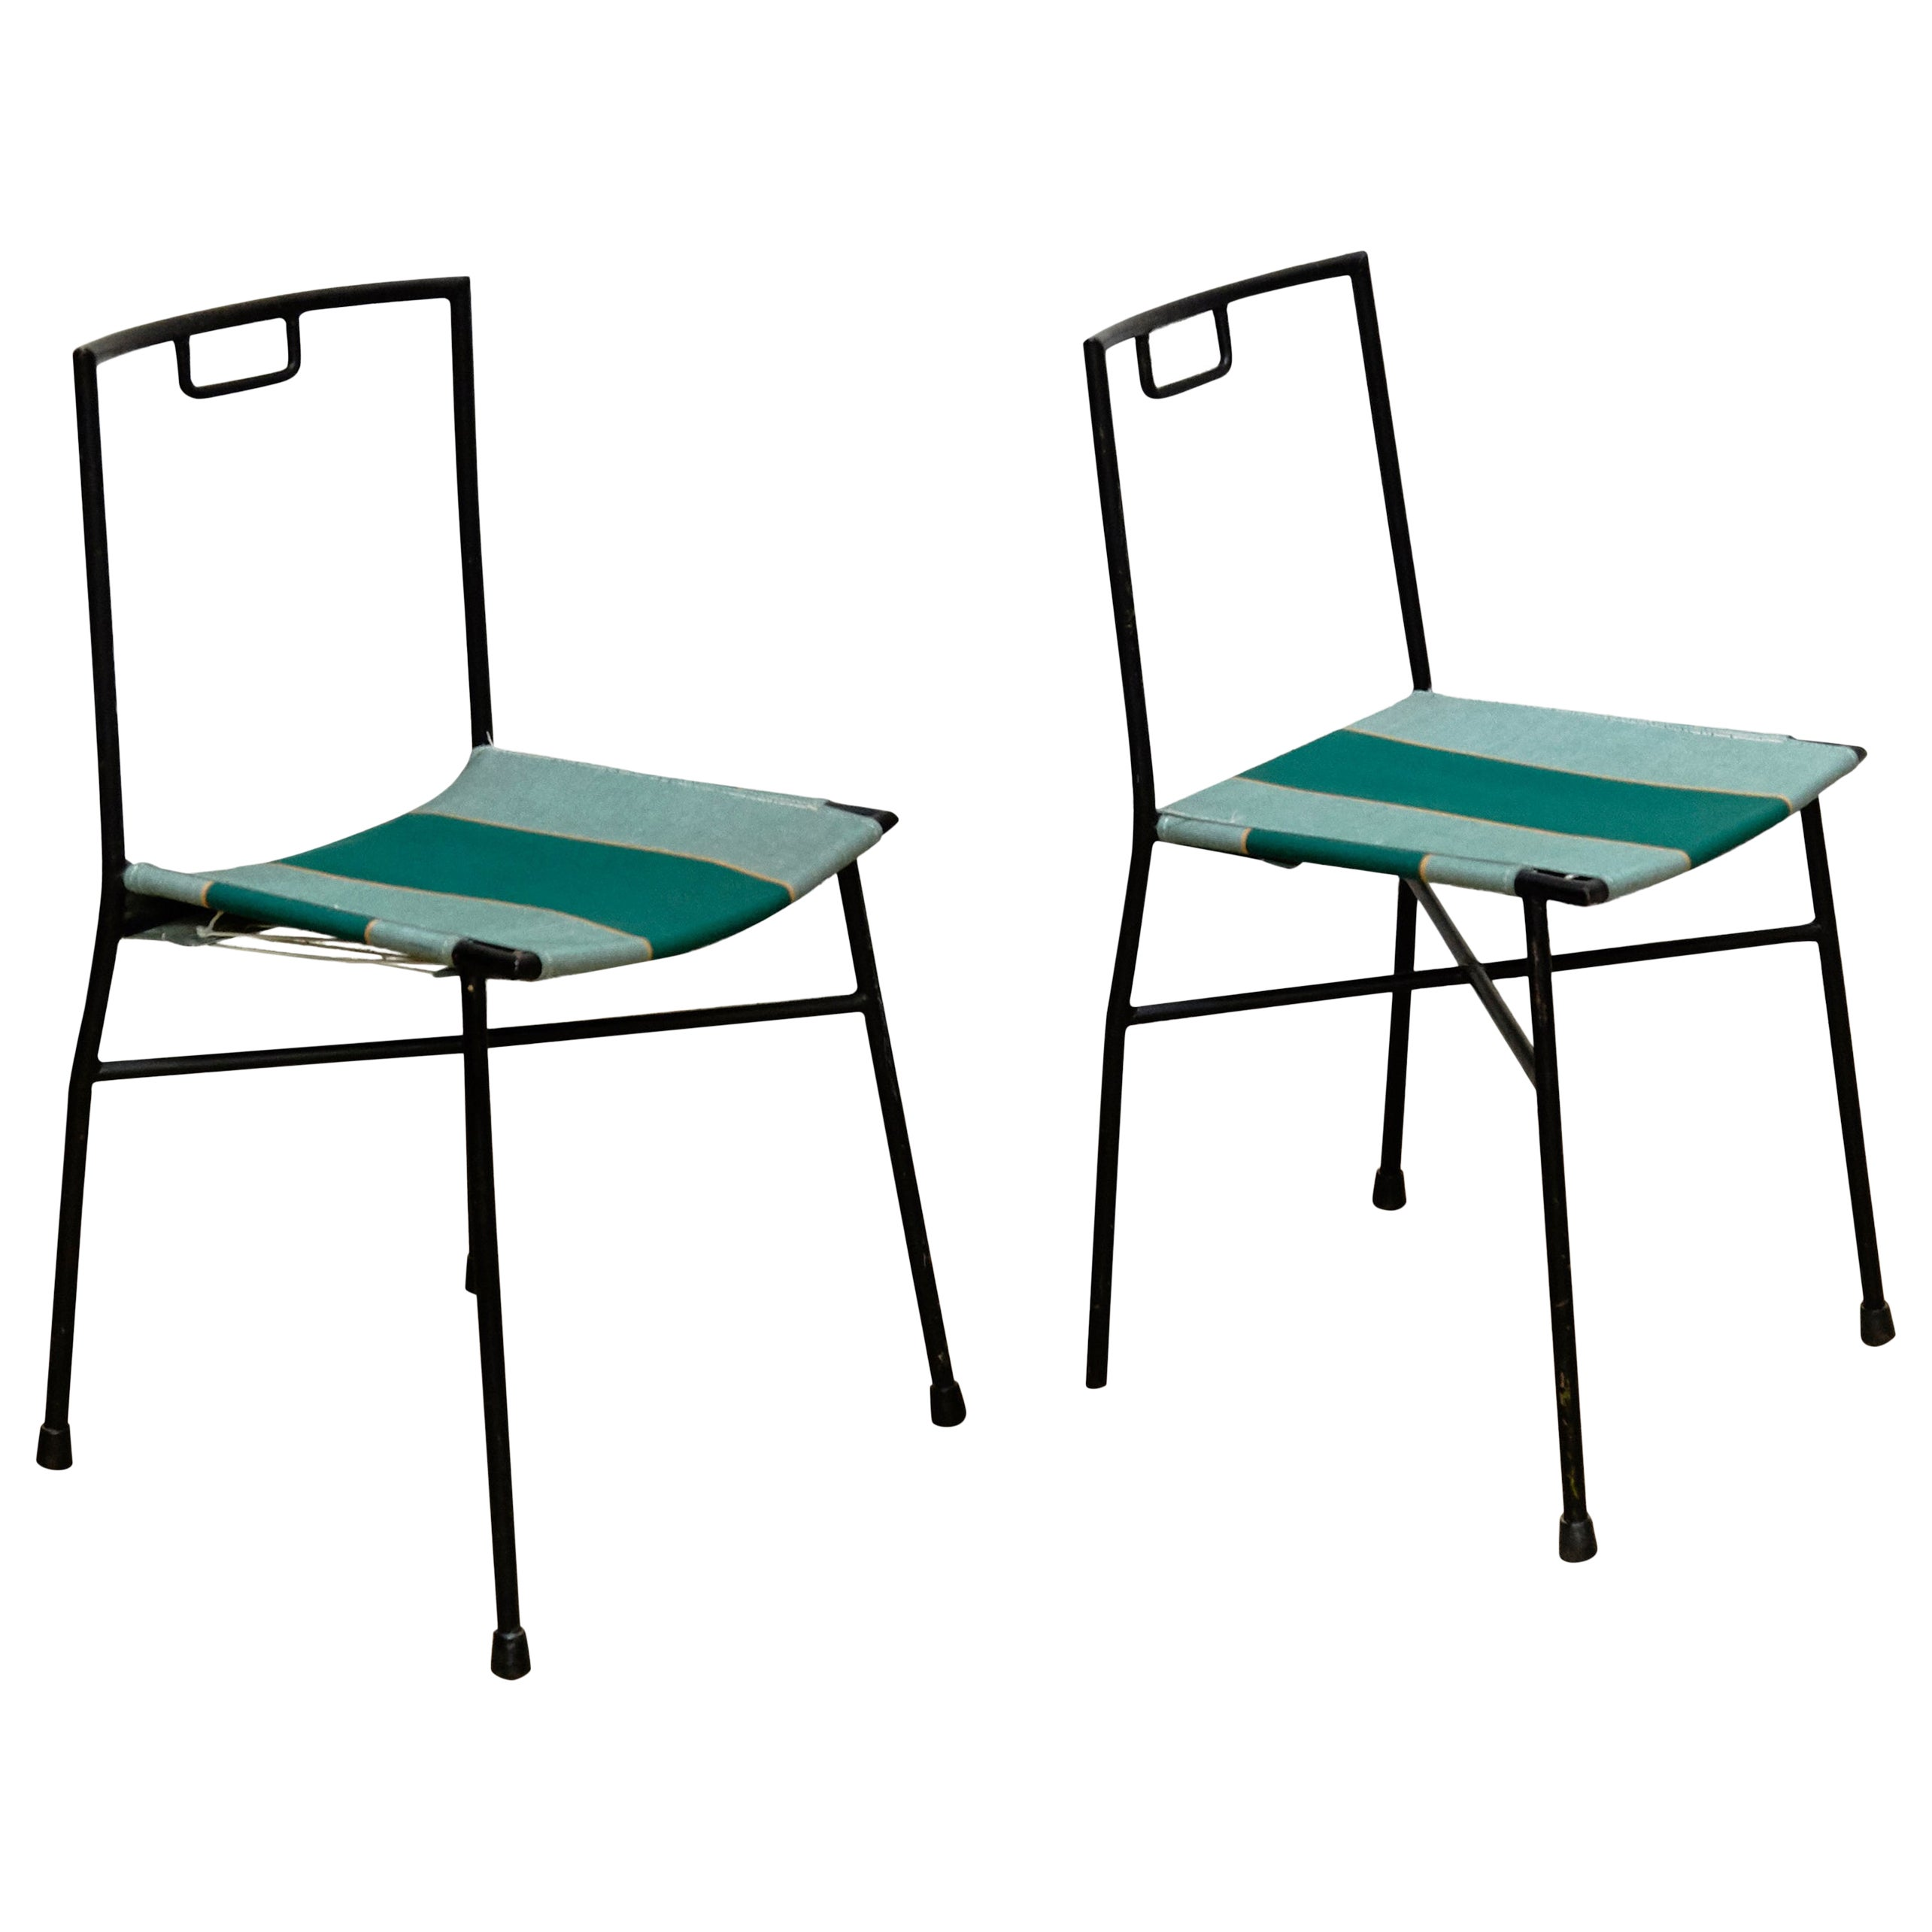 Pair of Lacquered Mid-Century Modern French Chairs, circa 1960